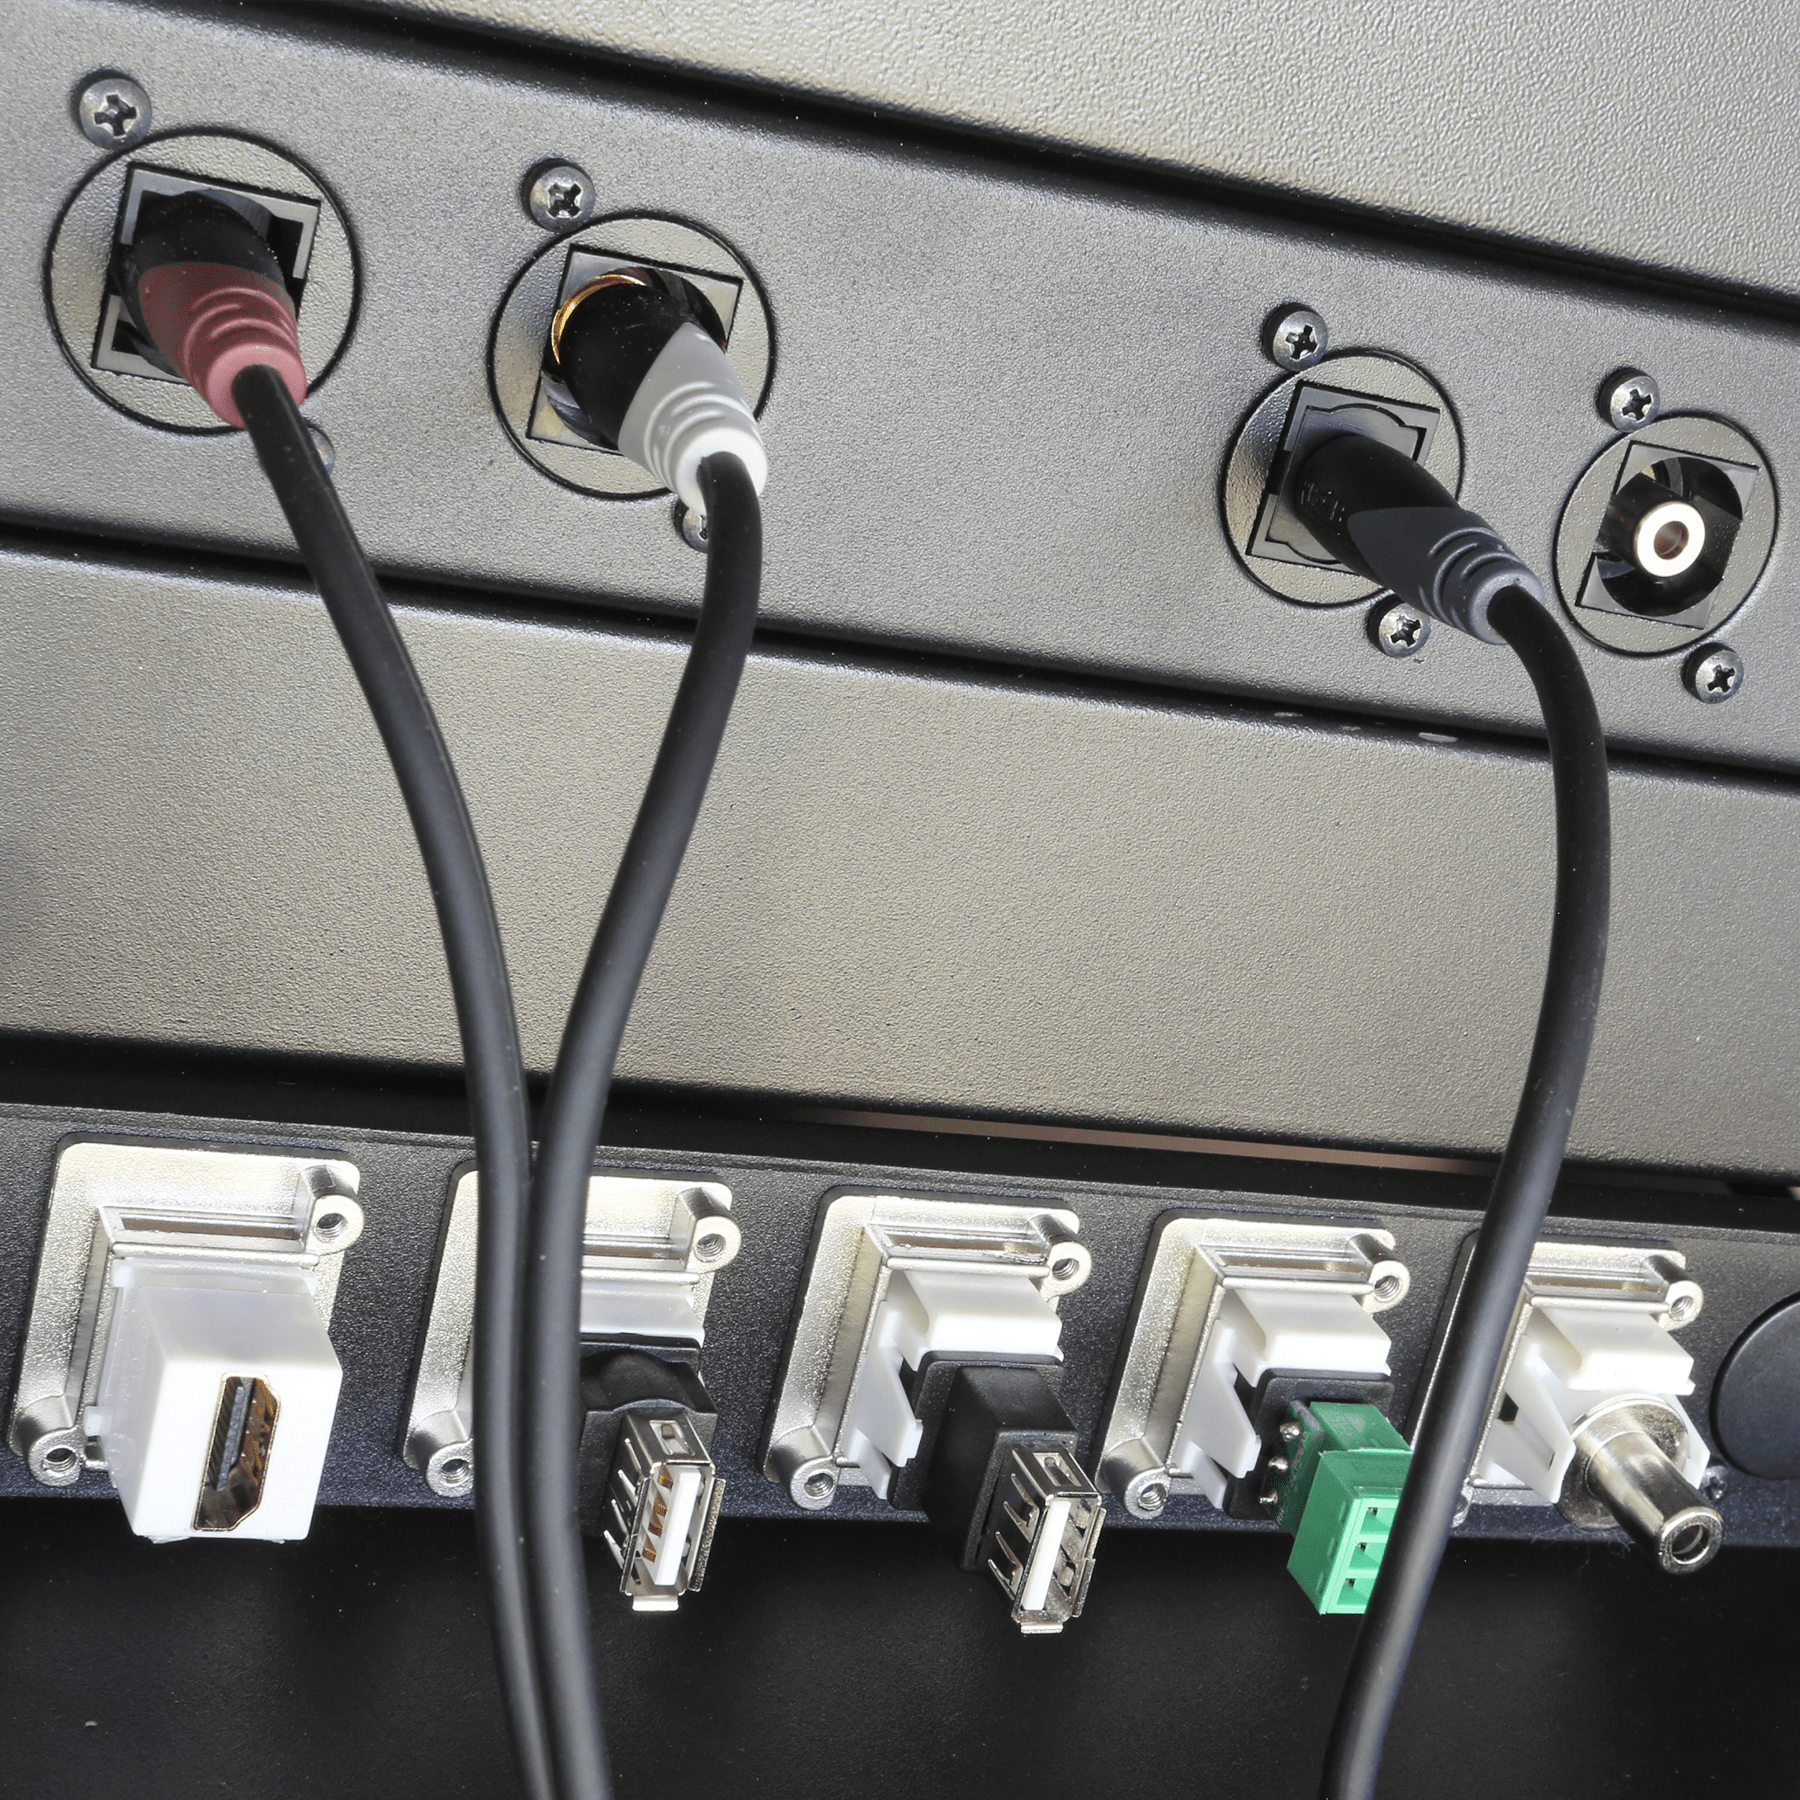 Connection panels -